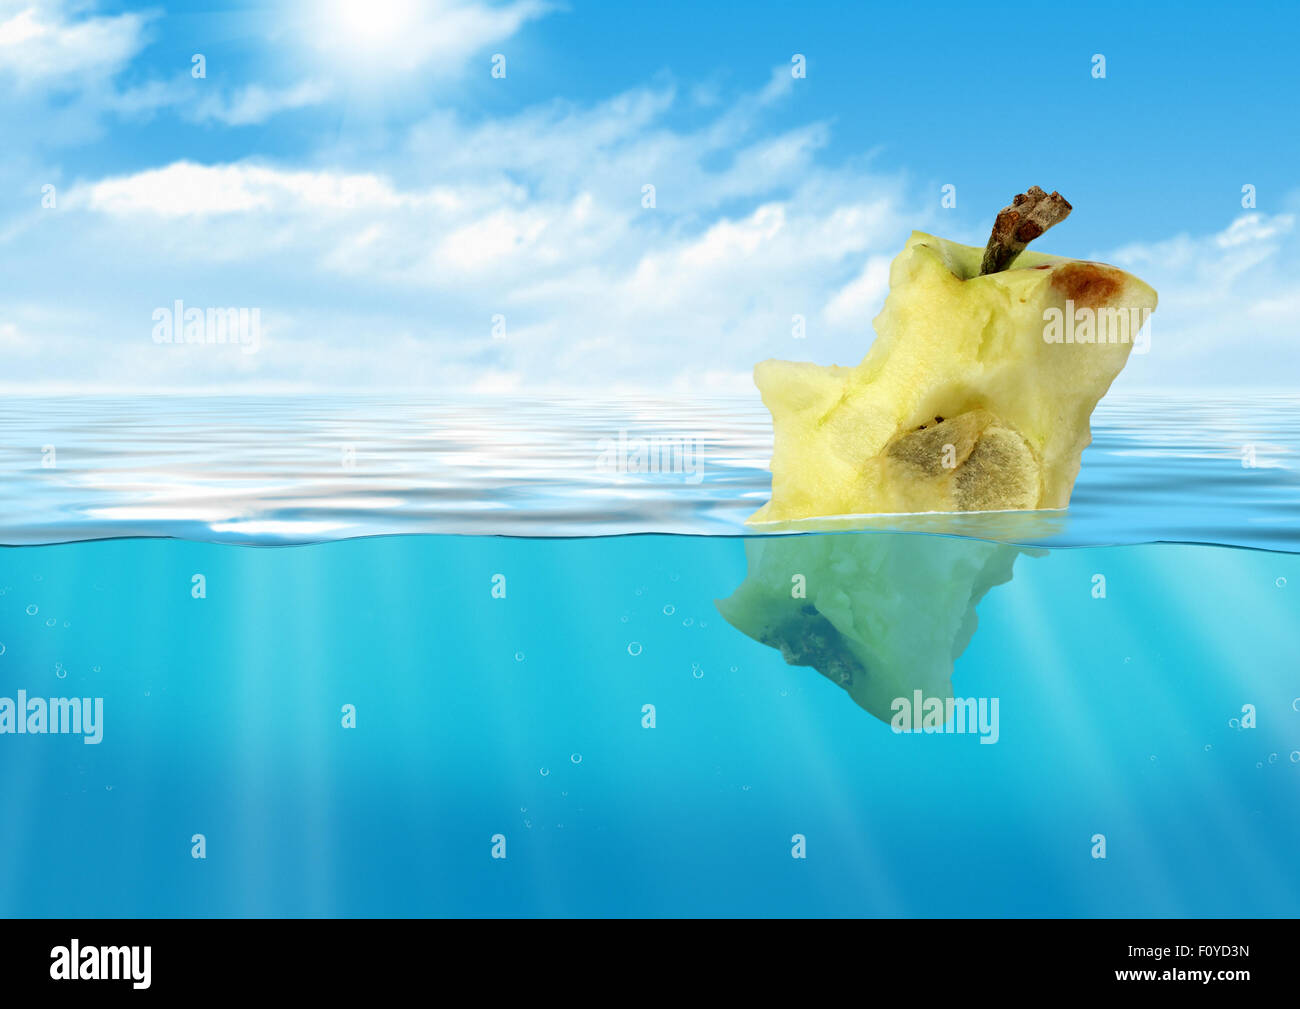 Bitten apple floating at sea, reservoir pollution concept - Stock Image